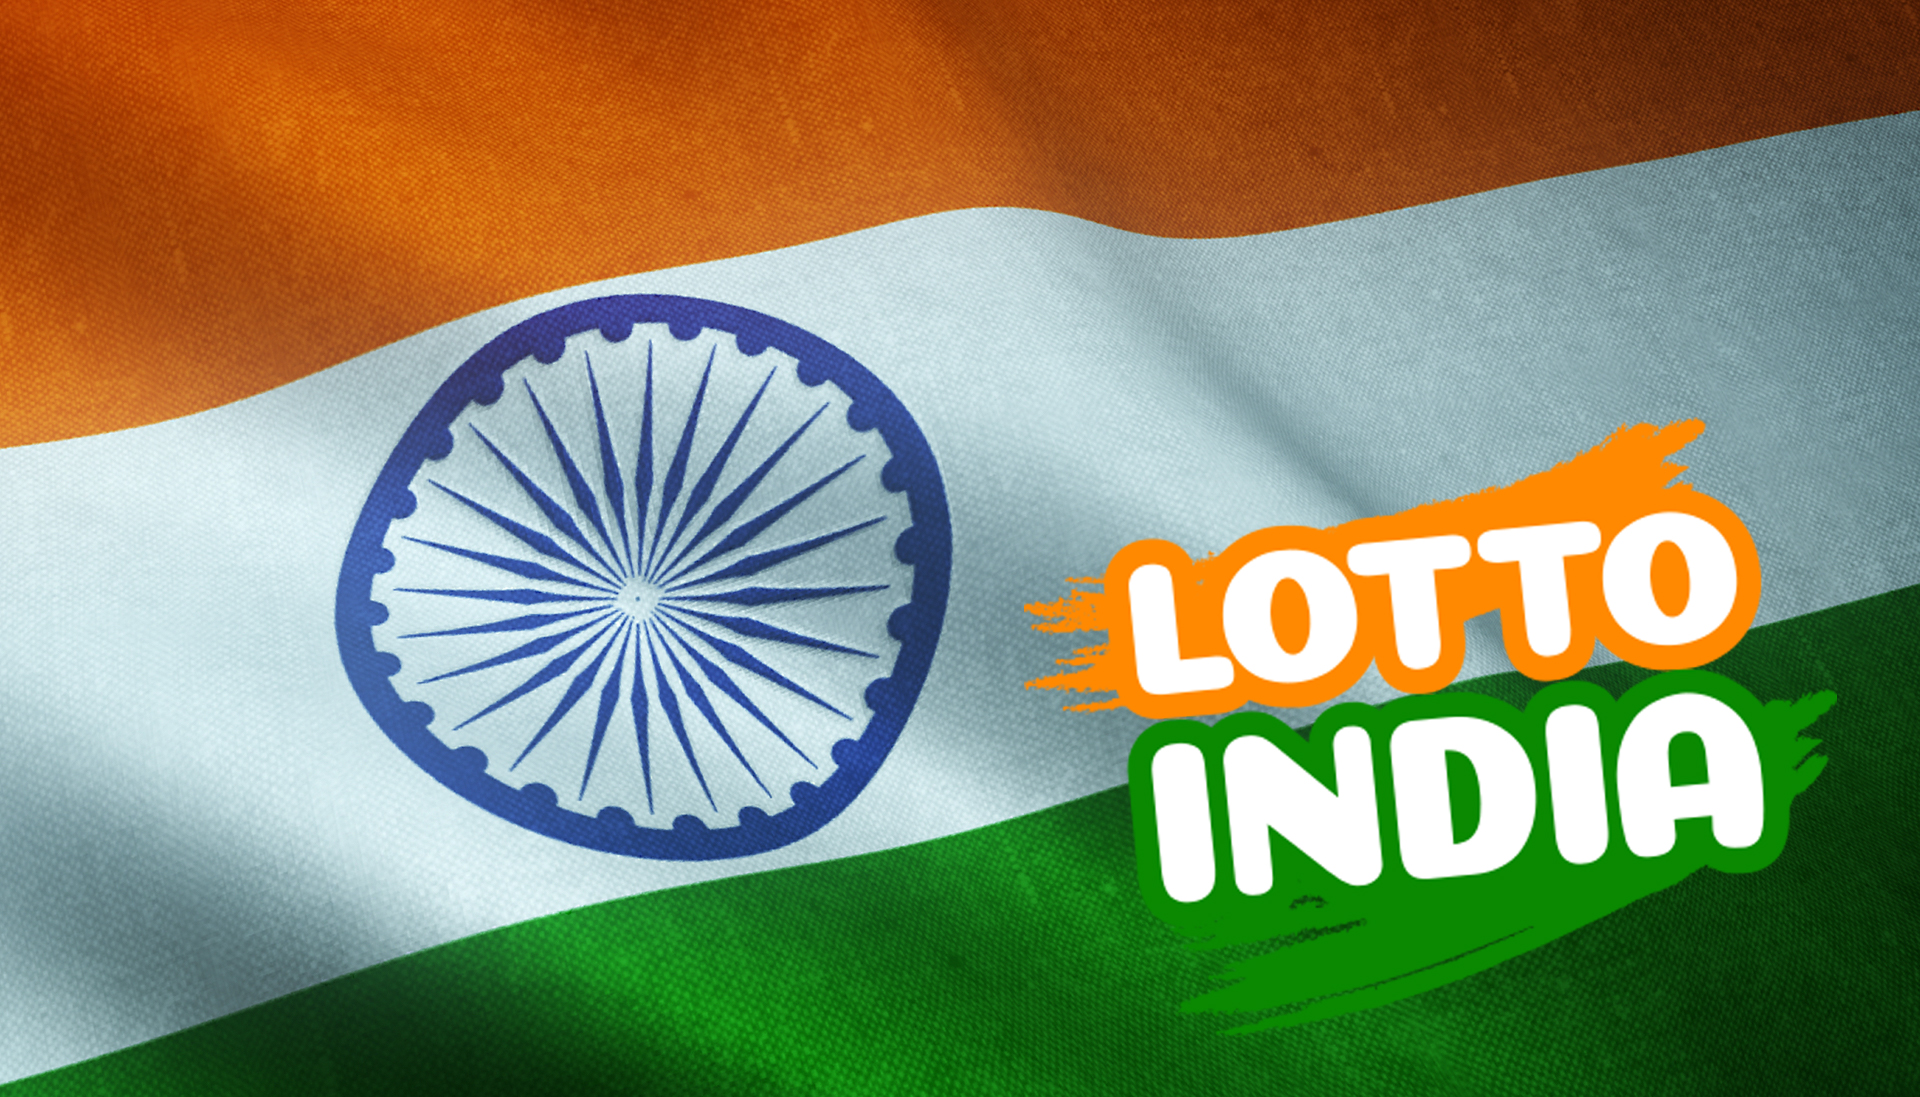 One ticket for the Lotto India online lottery costs only INR 40.